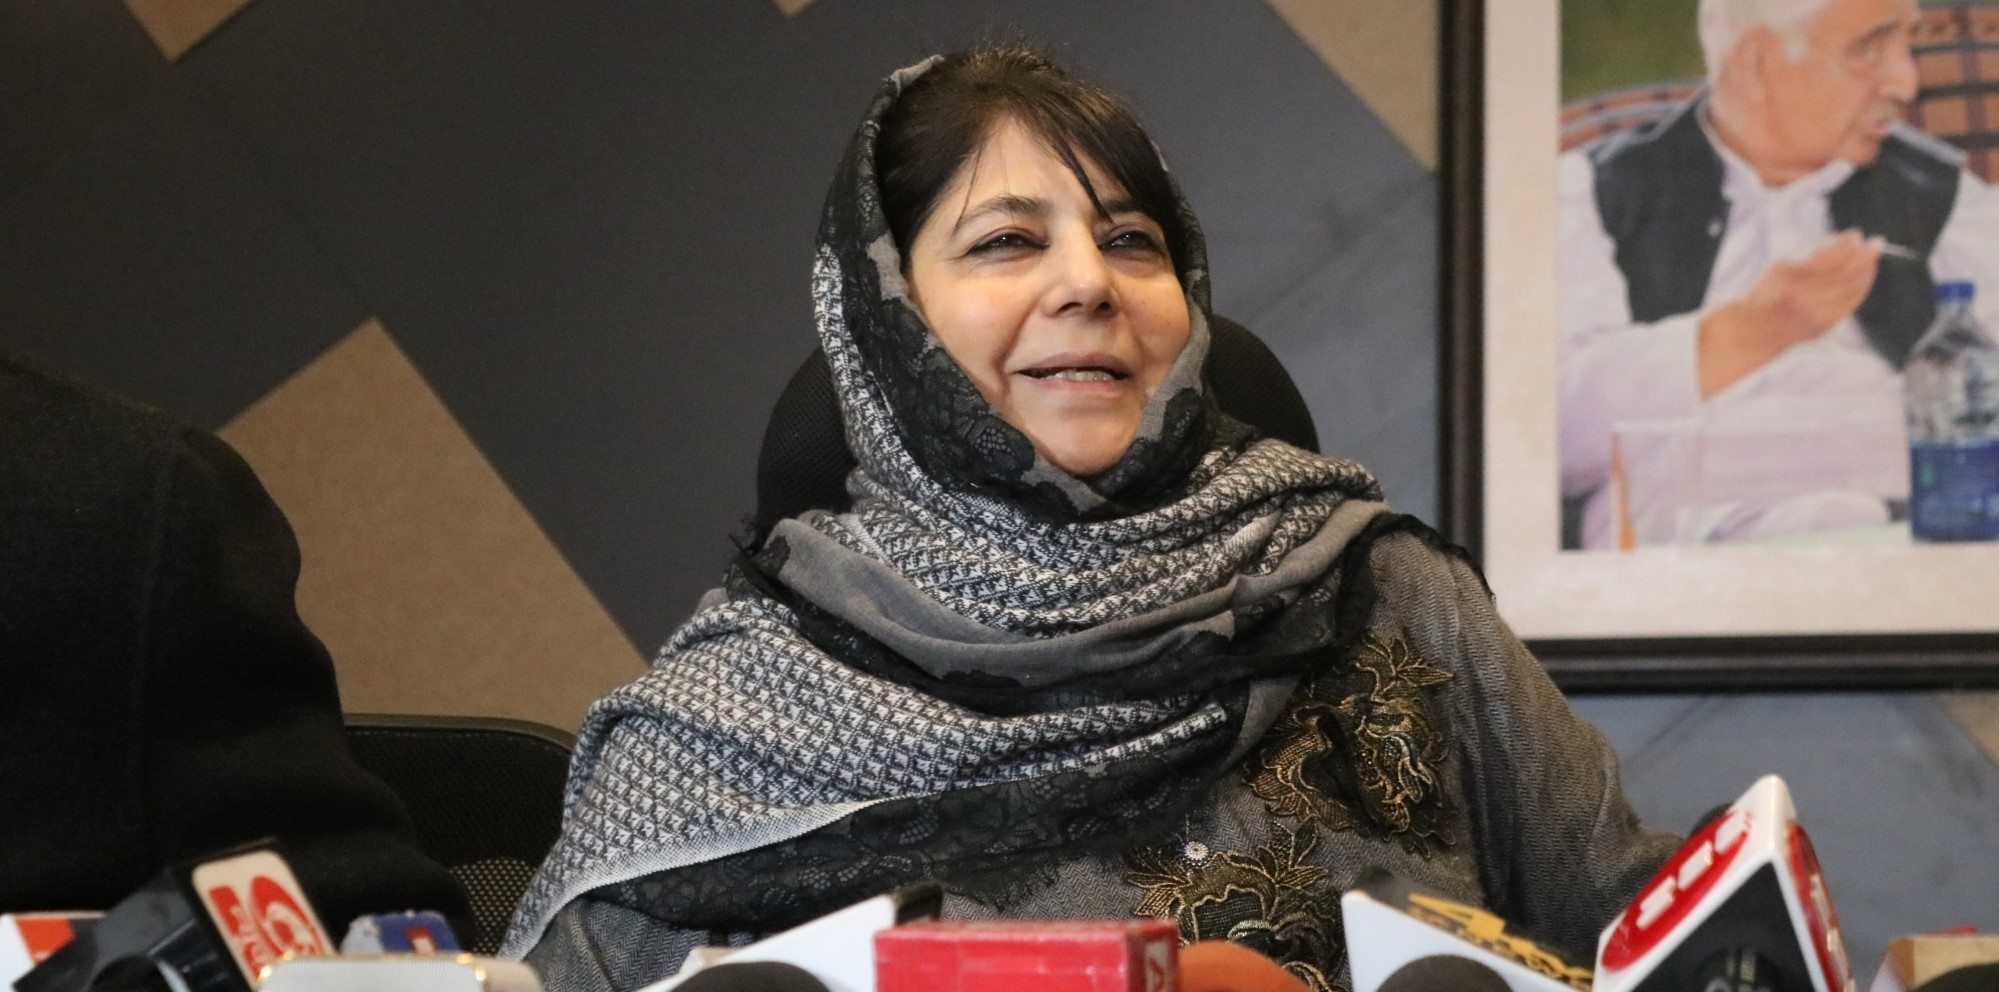 Shift my mother to place equipped for winter: Mehbooba Mufti'd daughter to J-K admn